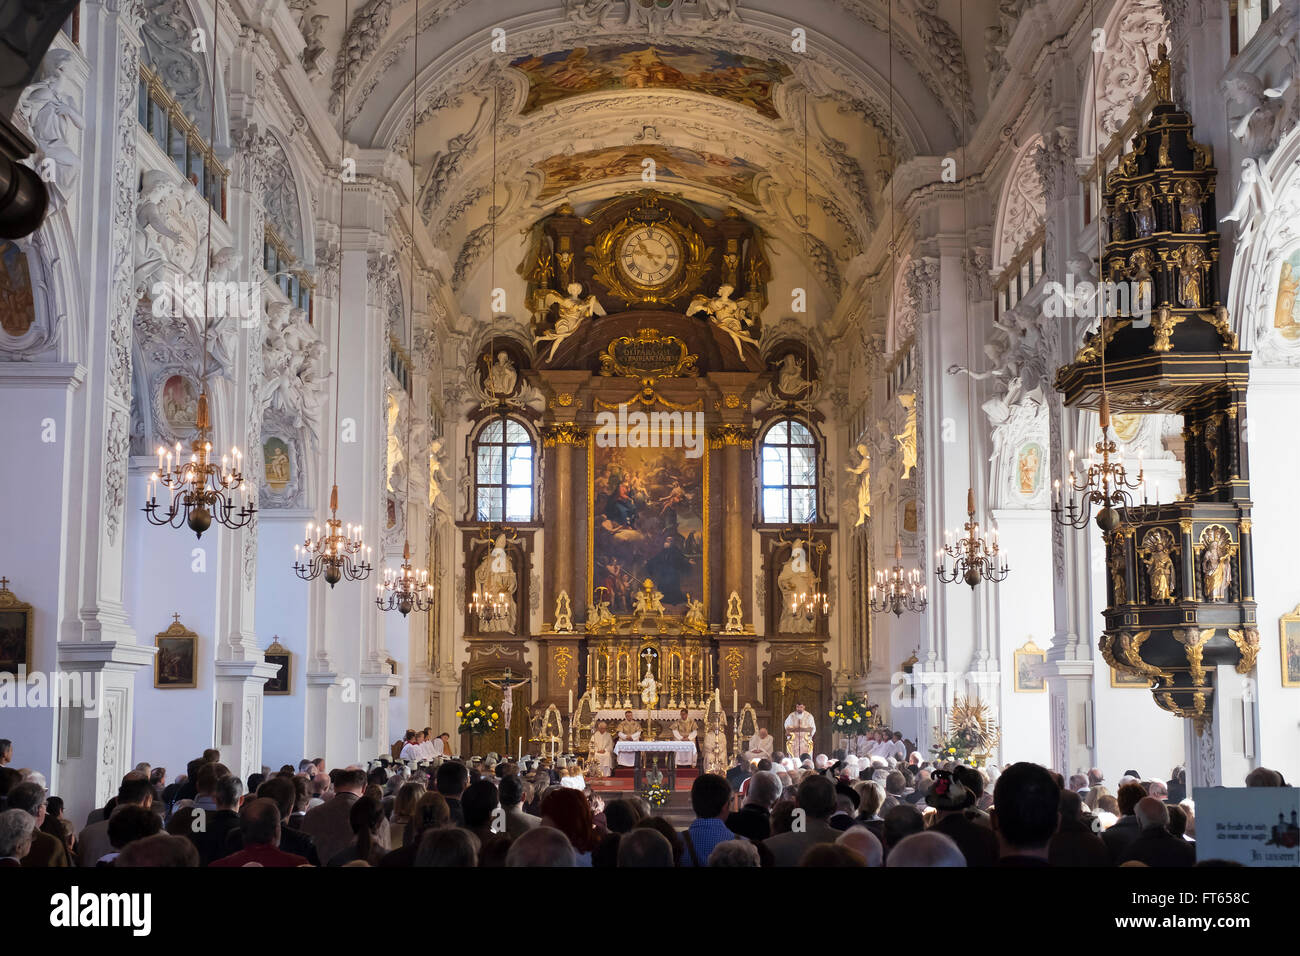 Leonhardi mass at the Basilica of St. Benedict, Benediktbeuern, Upper Bavaria, Bavaria, Germany - Stock Image